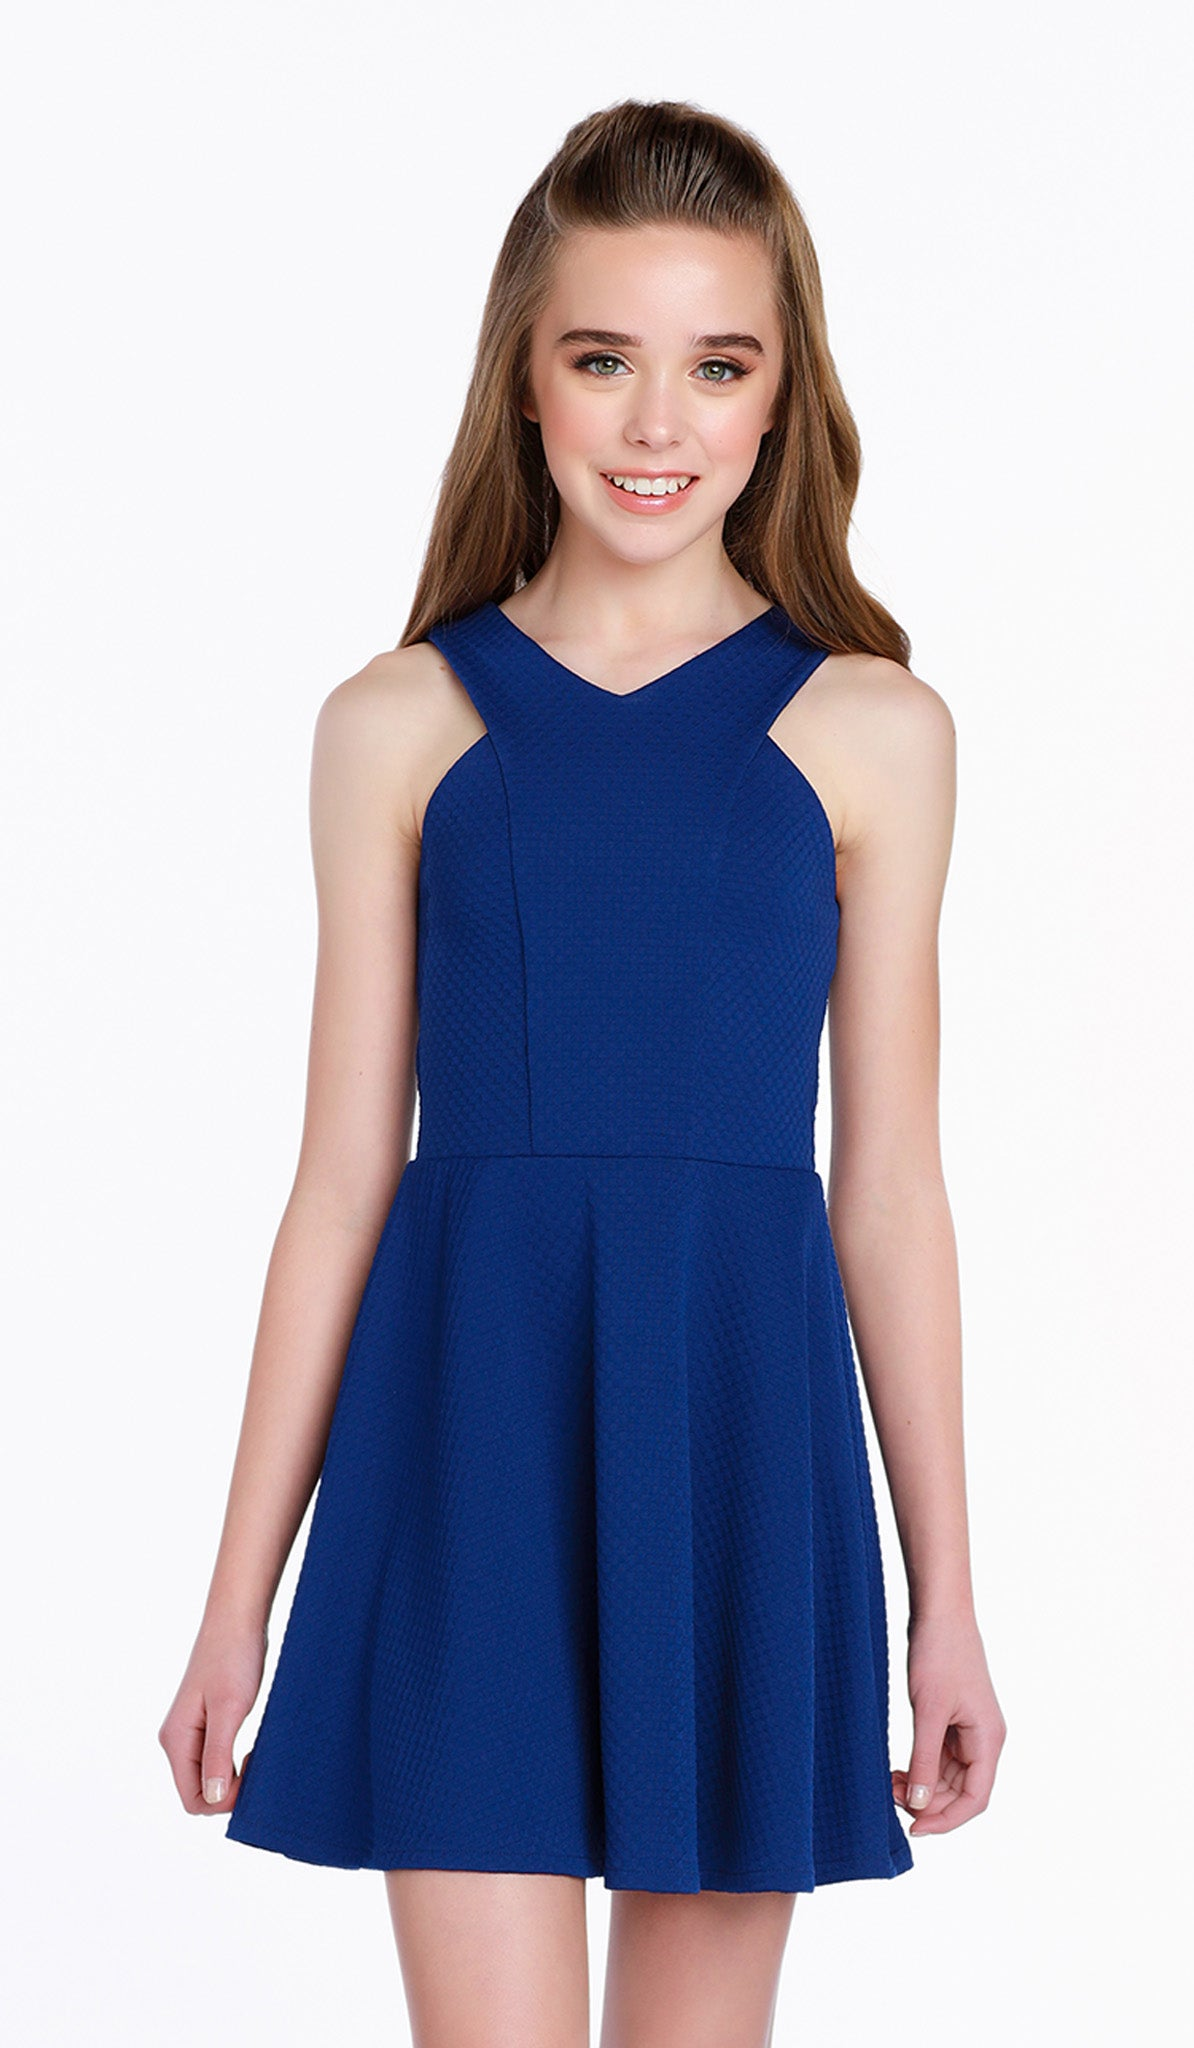 b7b91b128fec Sally Miller Tweens - Dresses | Event & Party Dresses for Tween ...